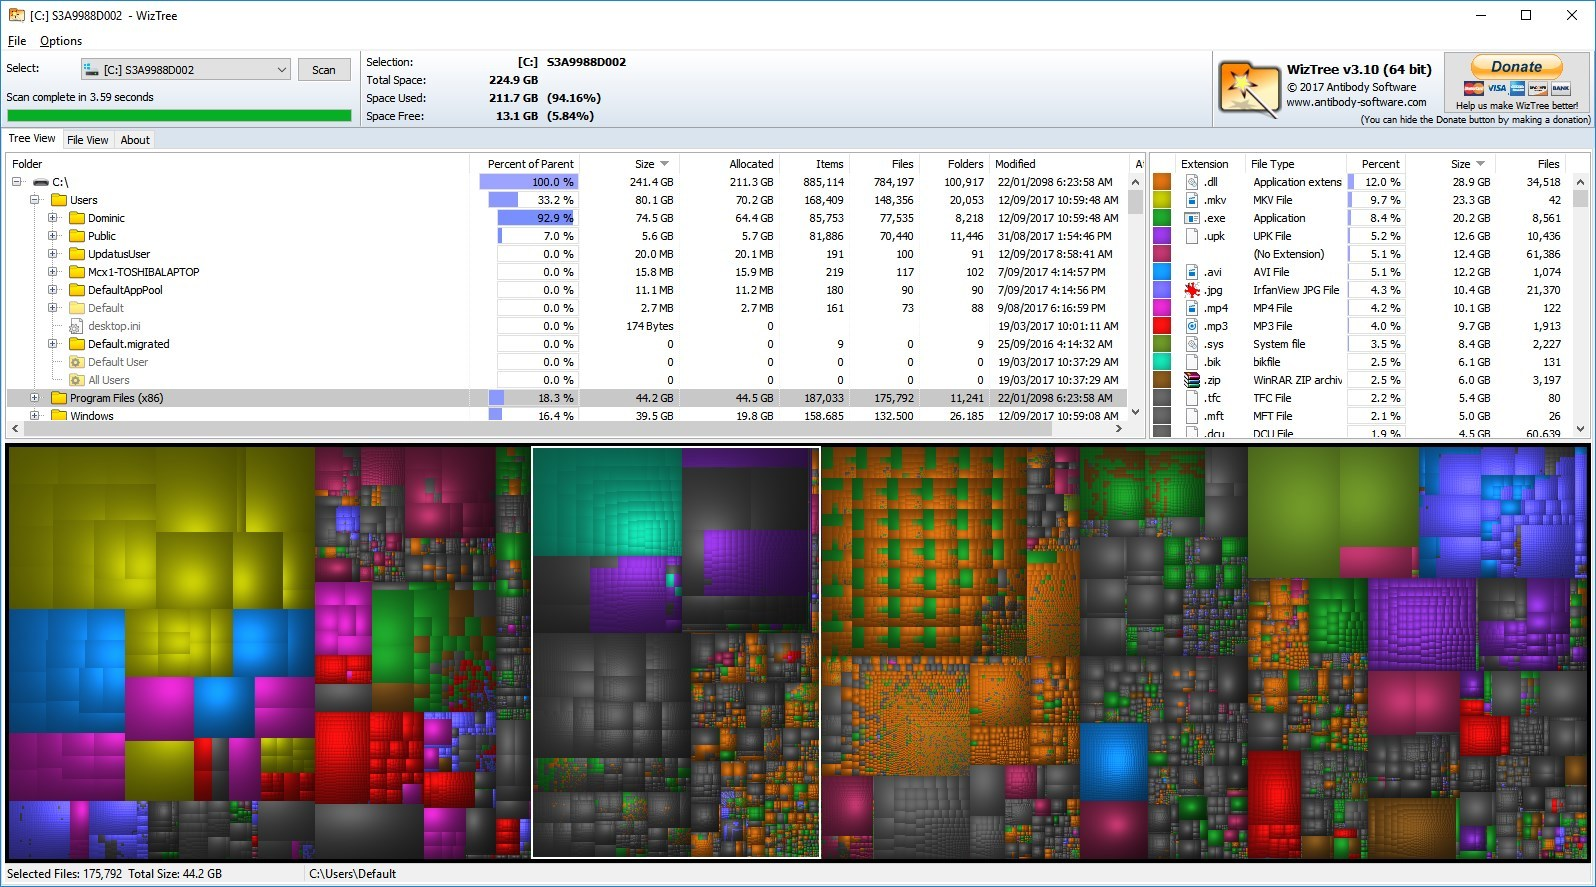 WizTree - The Portable Freeware Collection